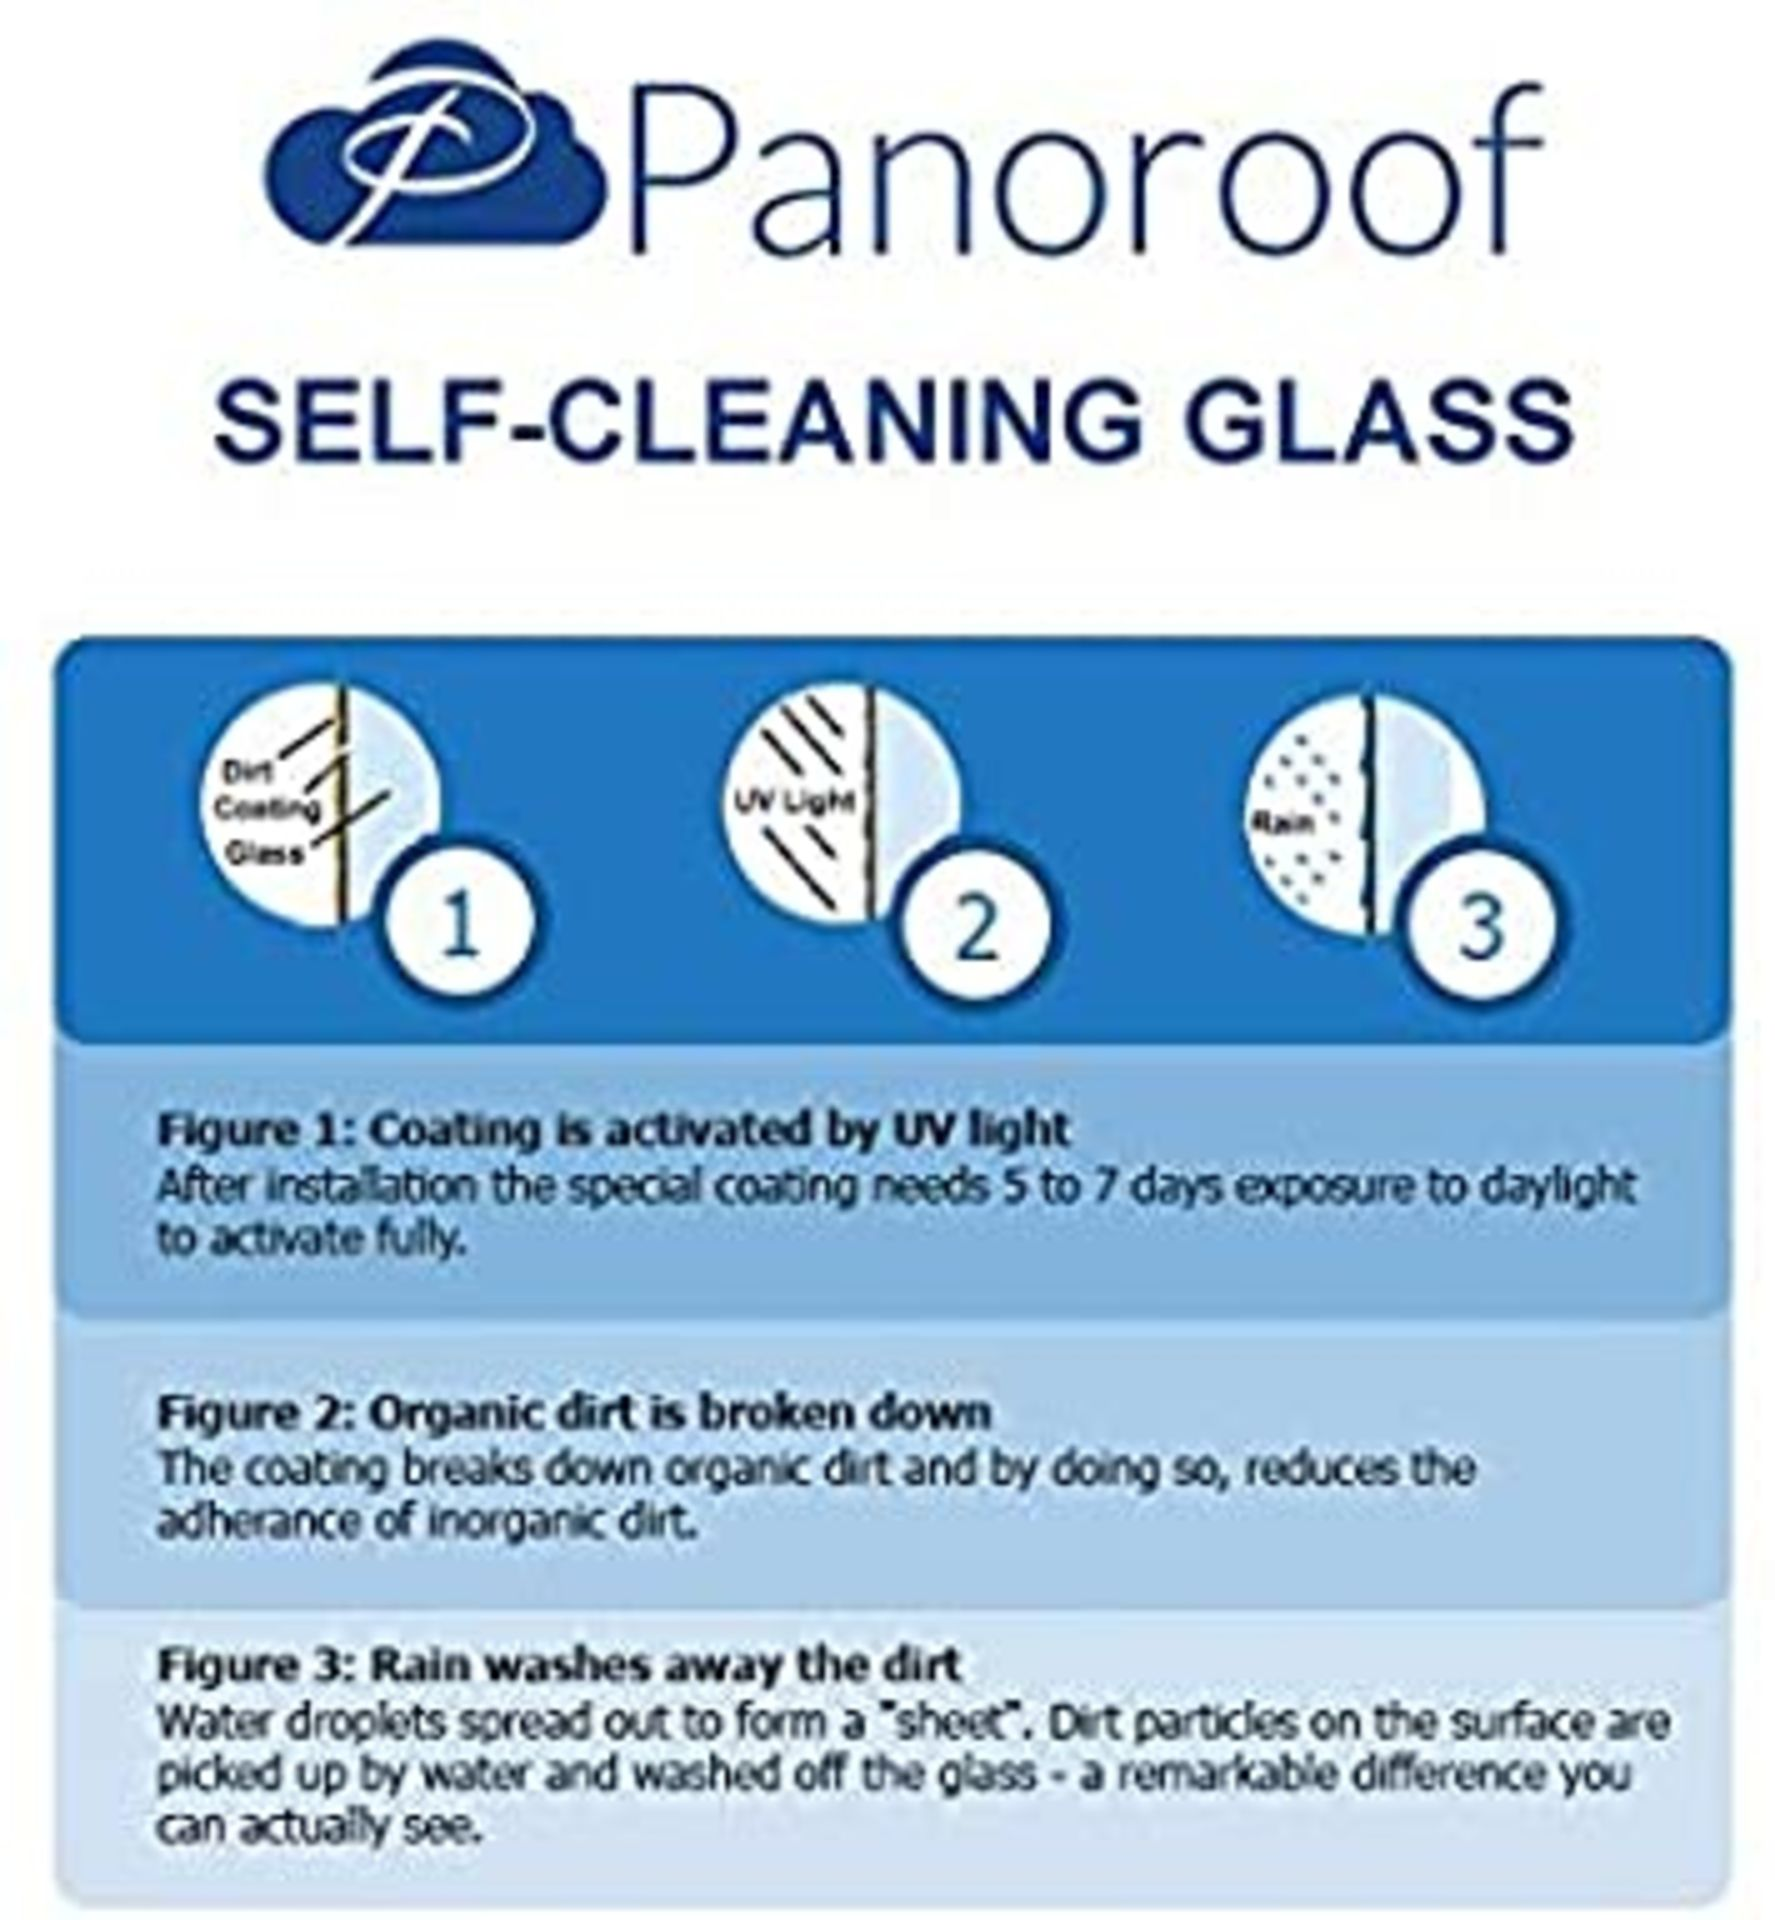 Panoroof 2000x2000mm (inside Size Visable glass area) Seamless Glass Skylight Flat Roof Rooflight - Image 6 of 6